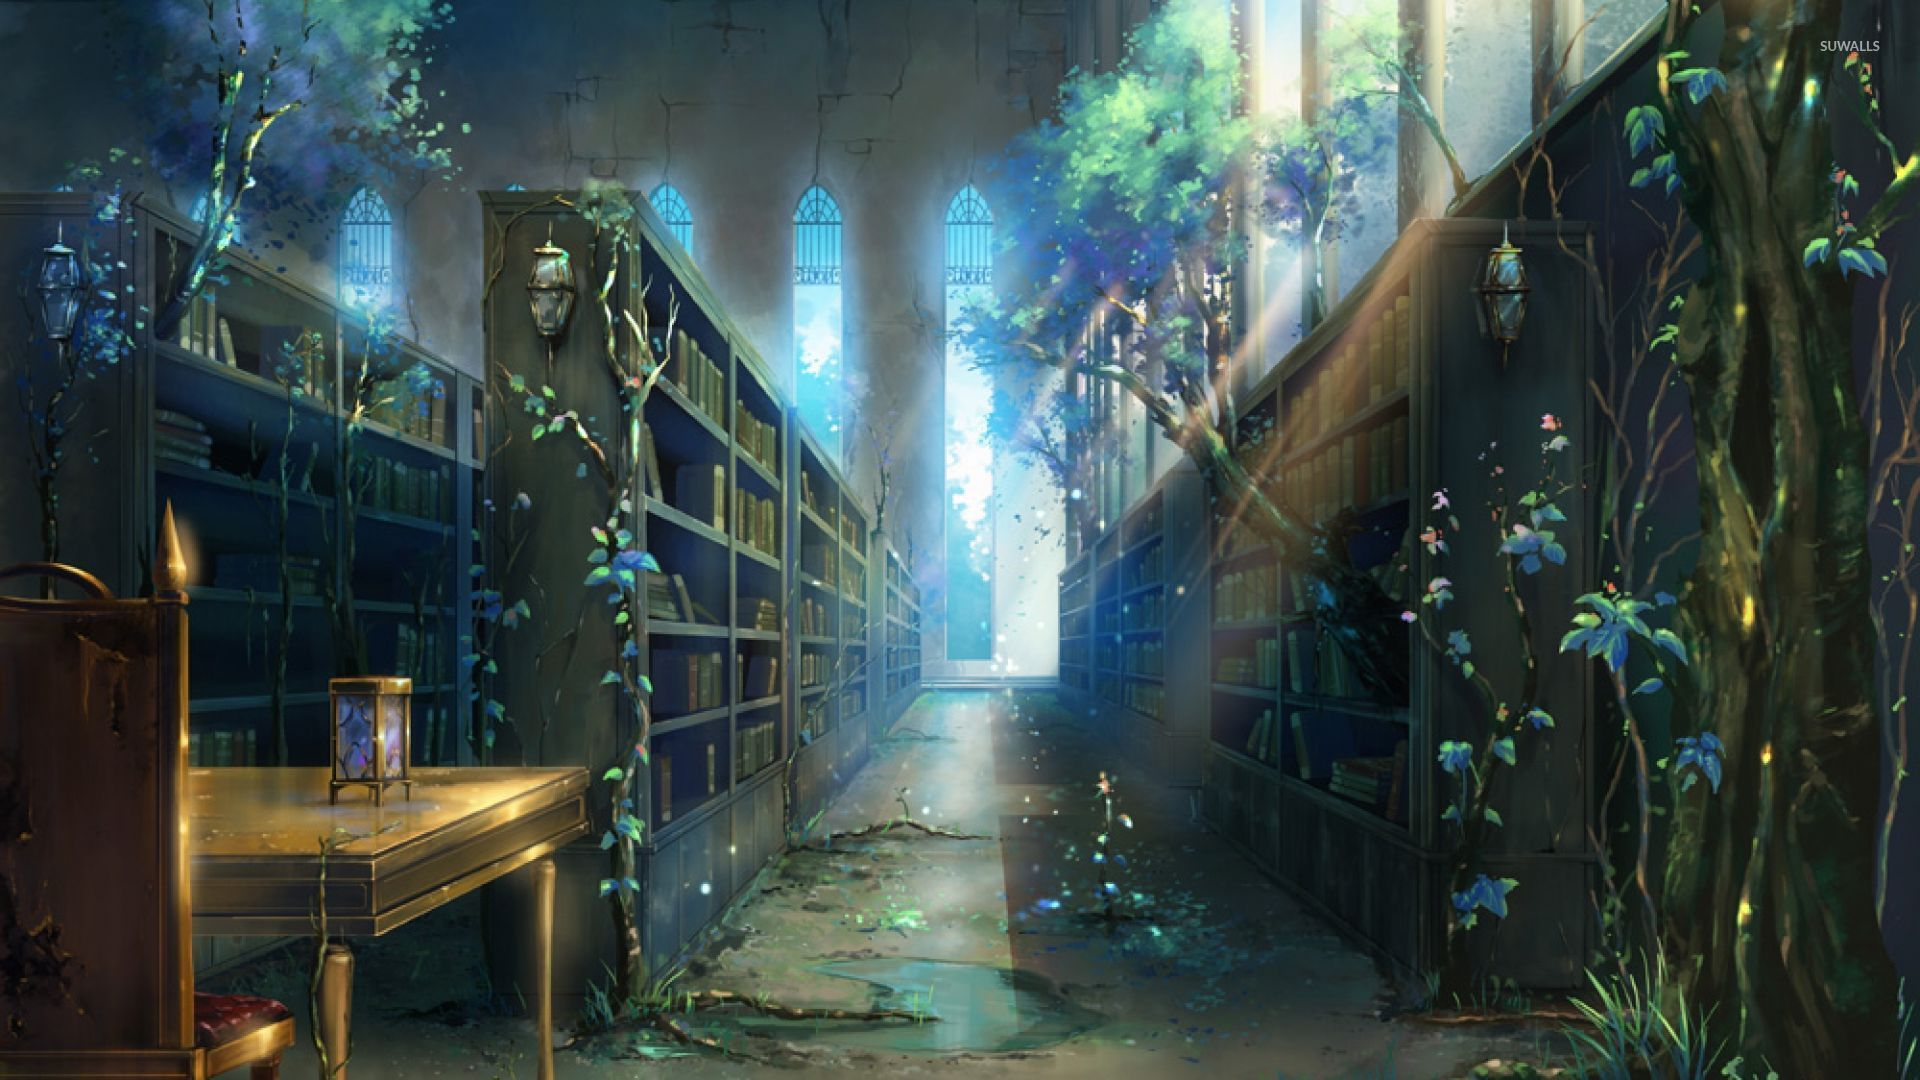 library wallpaper - artistic wallpapers - #19137